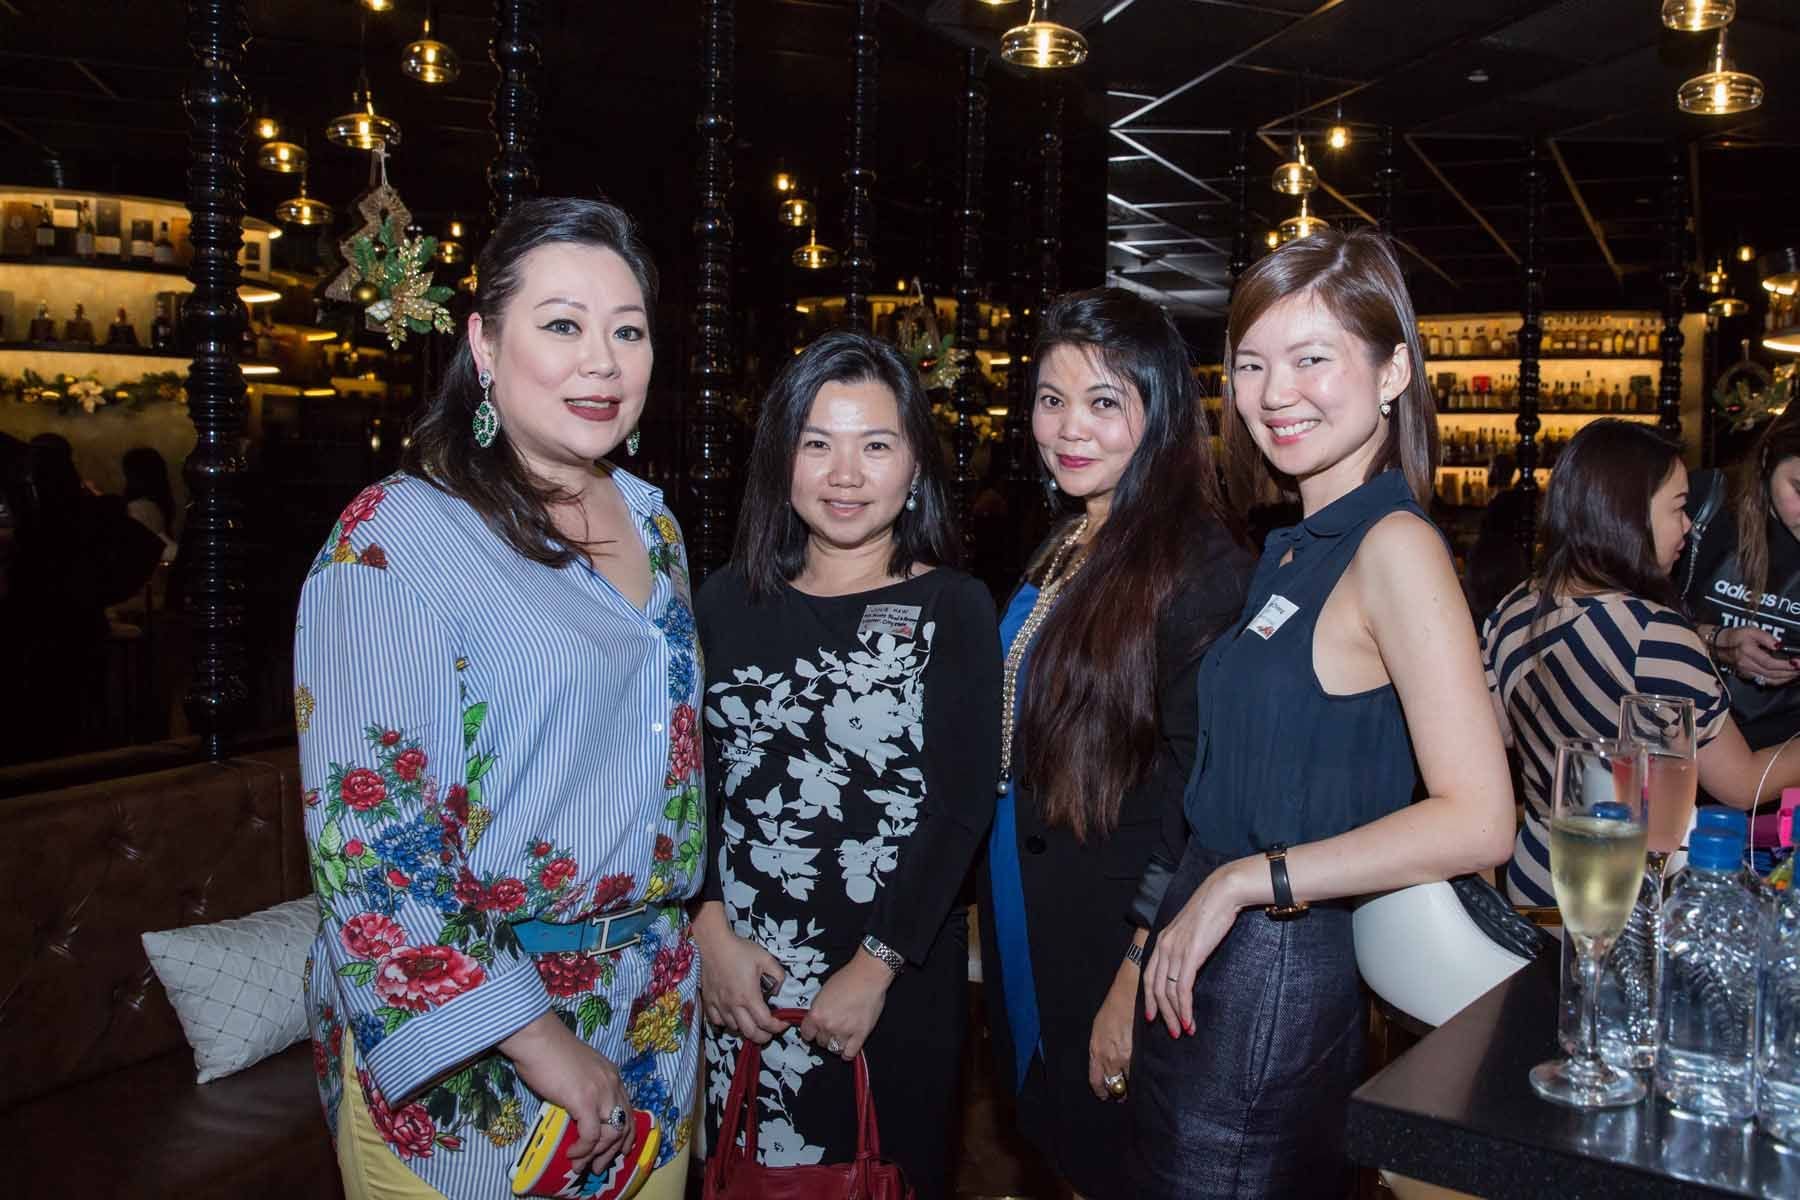 Cheryl Lee, Julie Haw, Jocelyn Chng, Grace Chiong